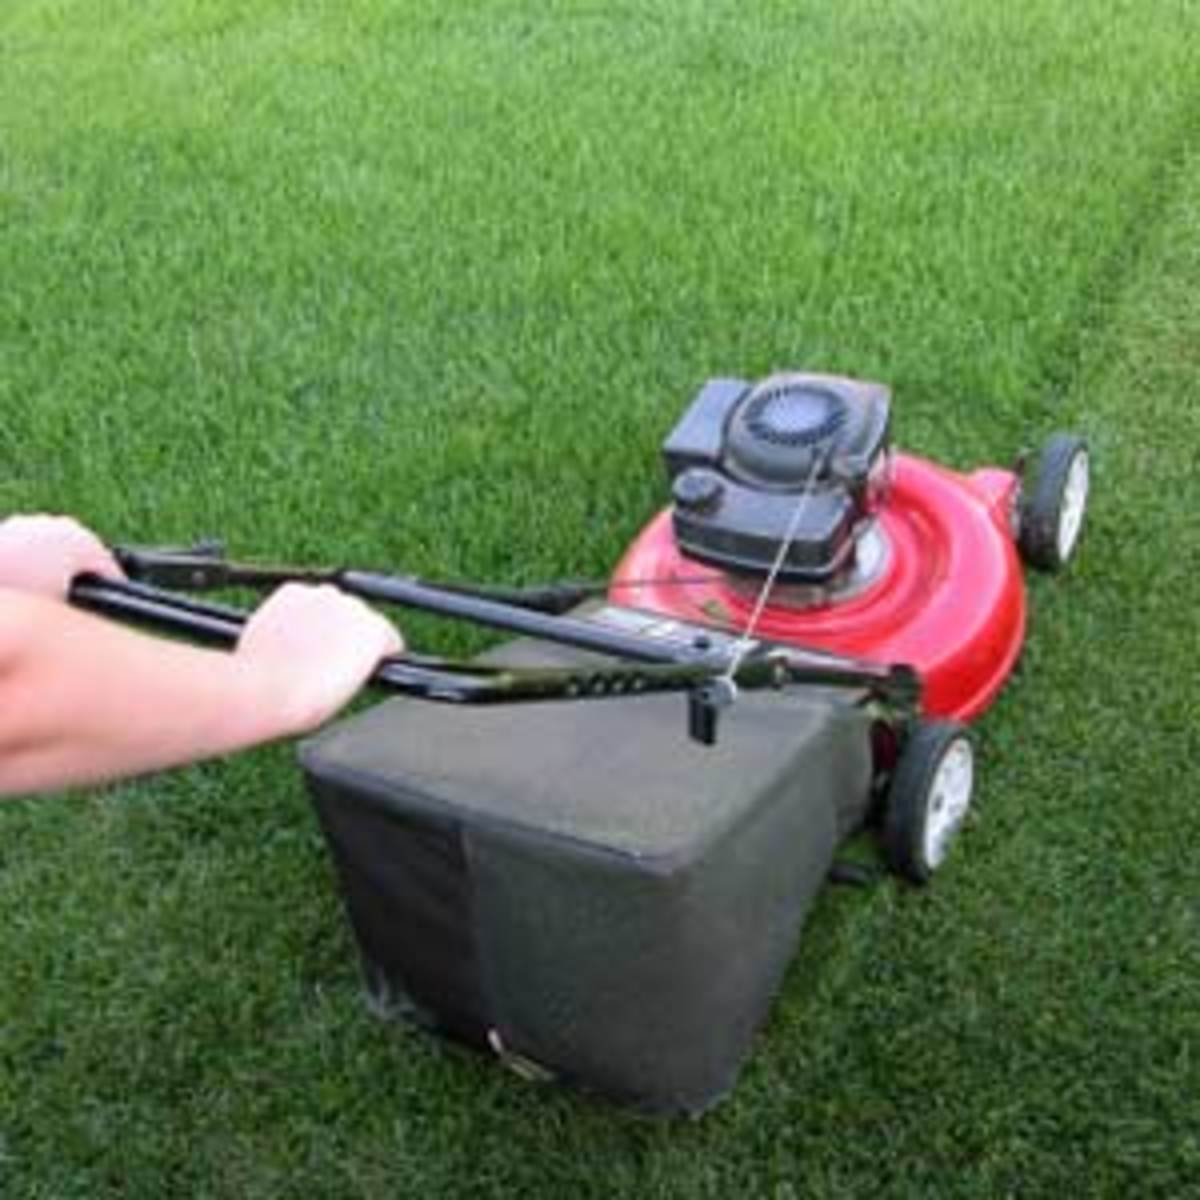 Mowing the Lawn - Tricks of the Trade